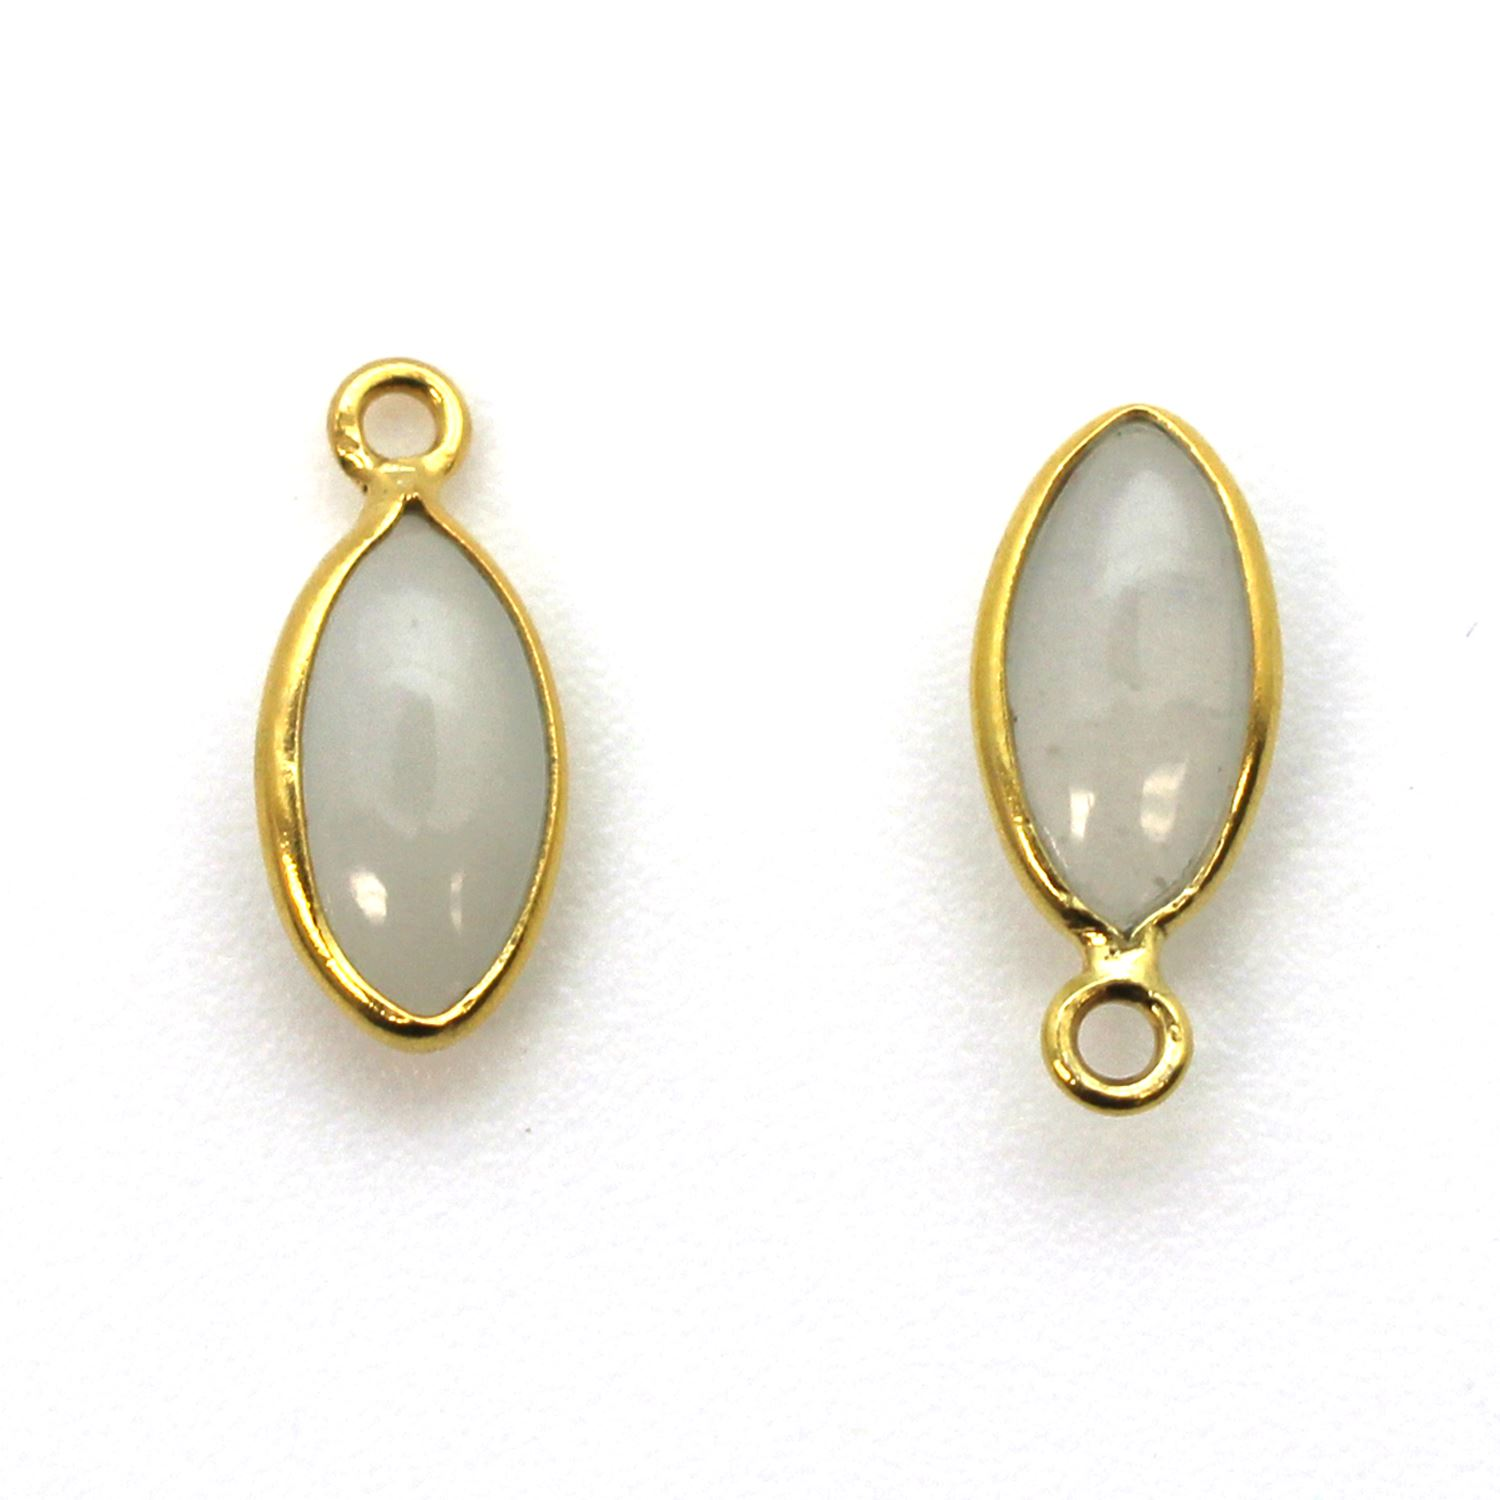 Bezel Charm Pendant - Gold Plated Sterling Silver Charm - Natural Moonstone - Tiny Marquise Shape -6x13mm